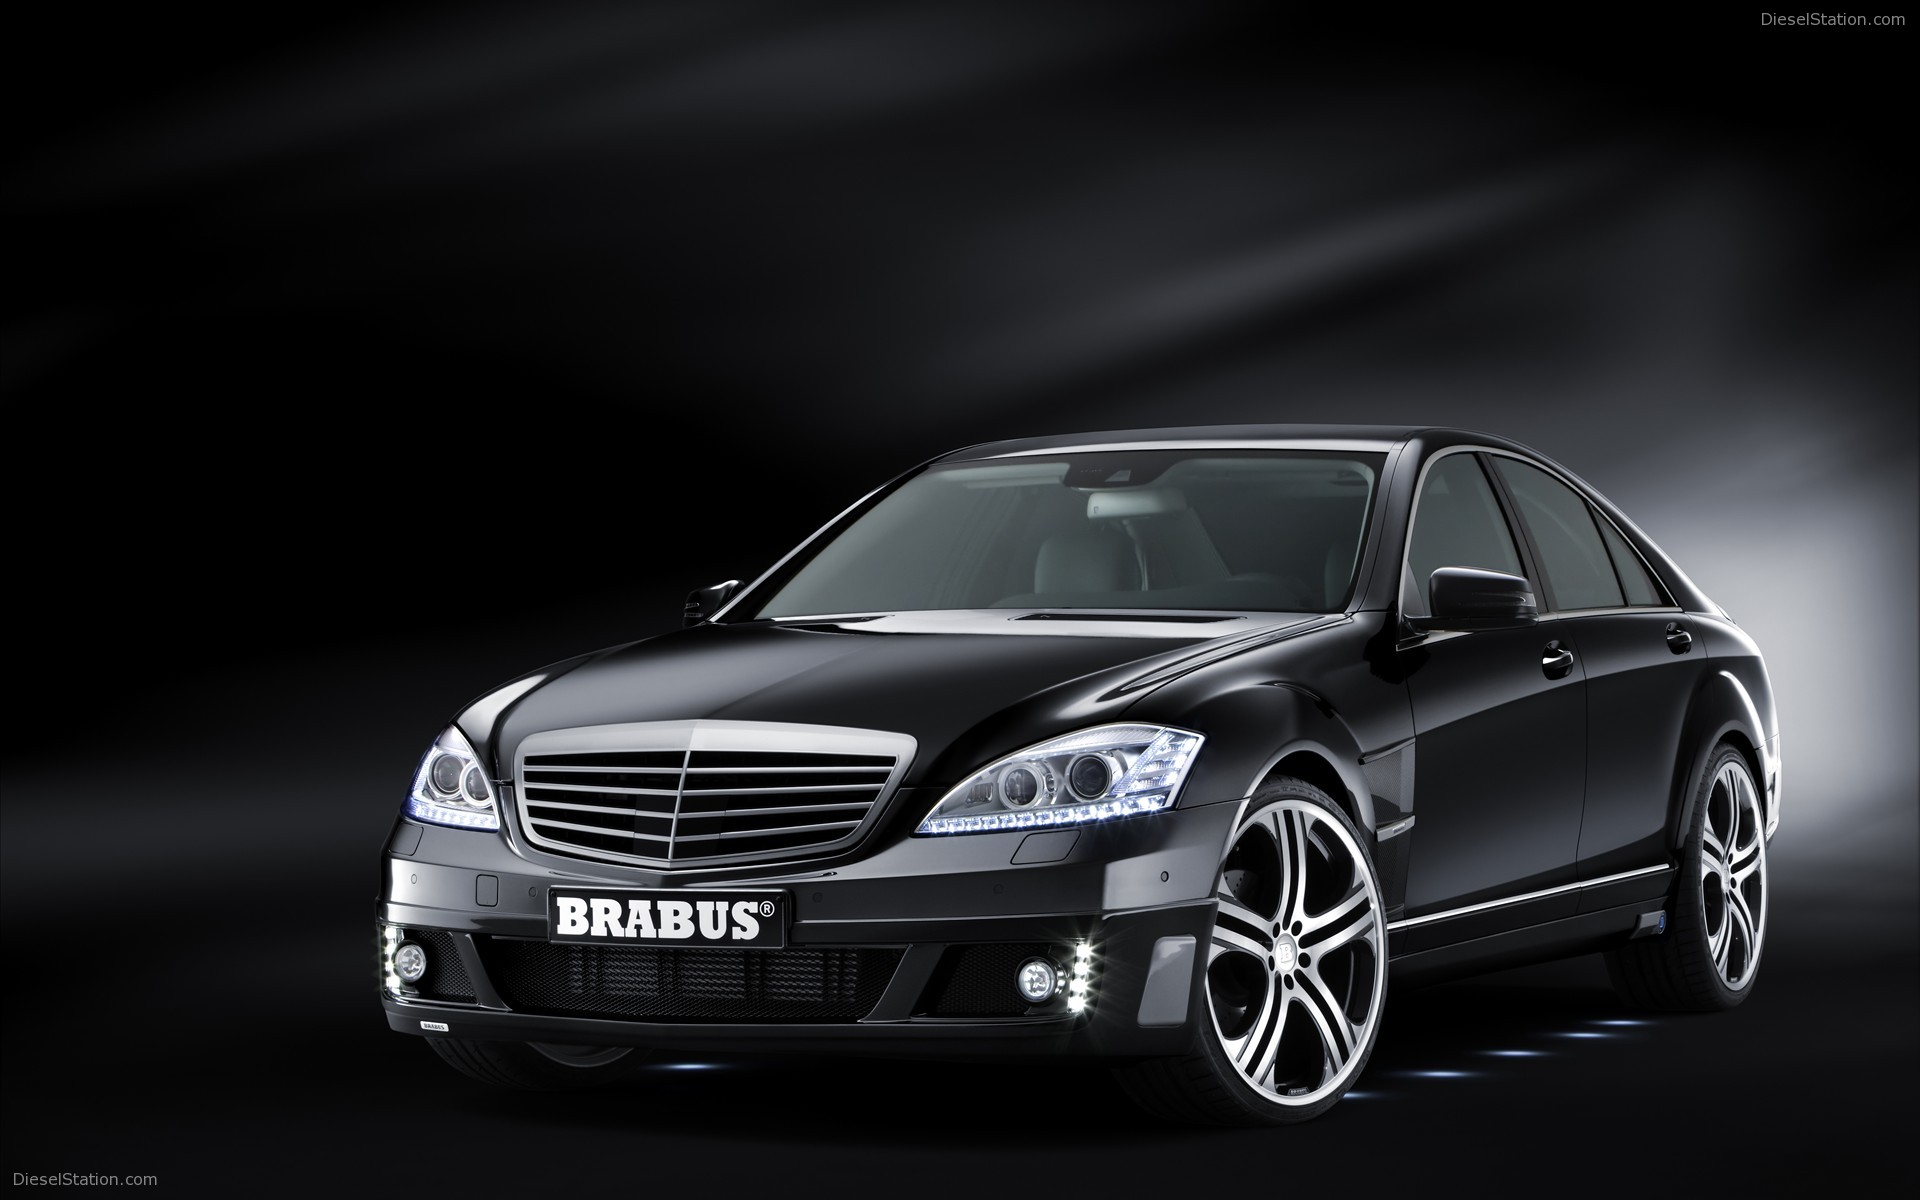 Mercedes-benz brabus photo - 10